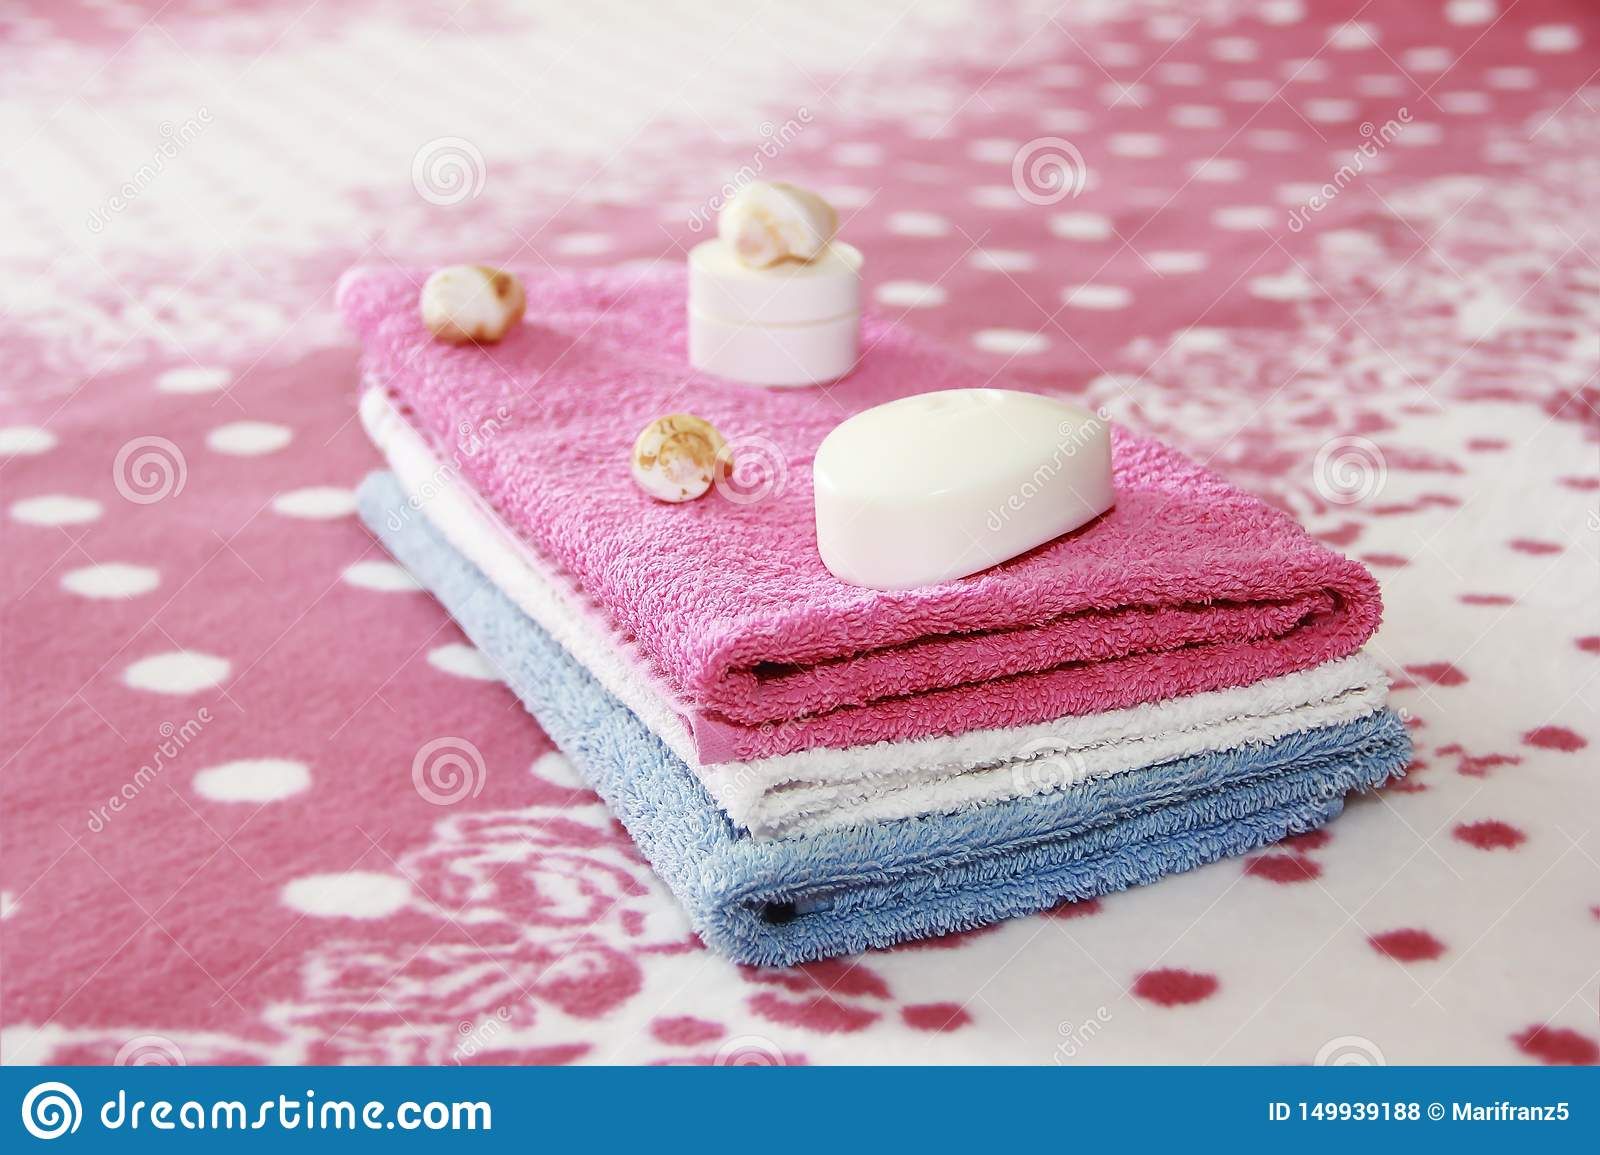 White toilet soap and decor against the background of pink terry towels